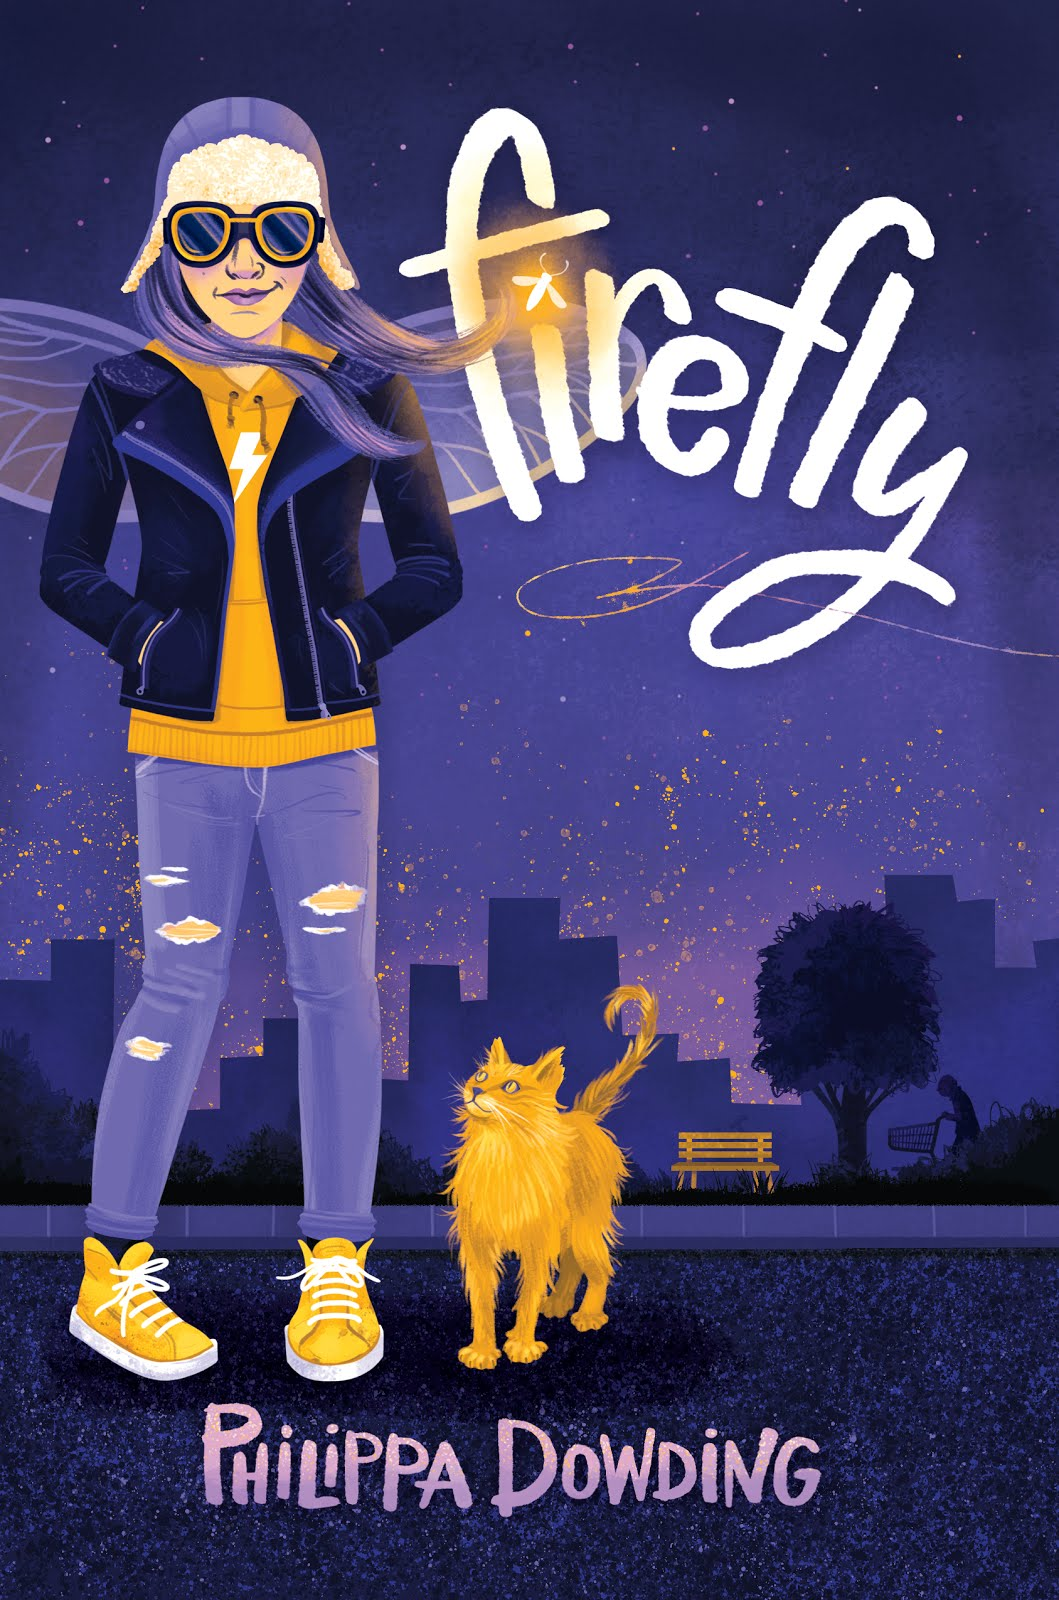 FIREFLY is coming February 2021 from DCB Young Readers!